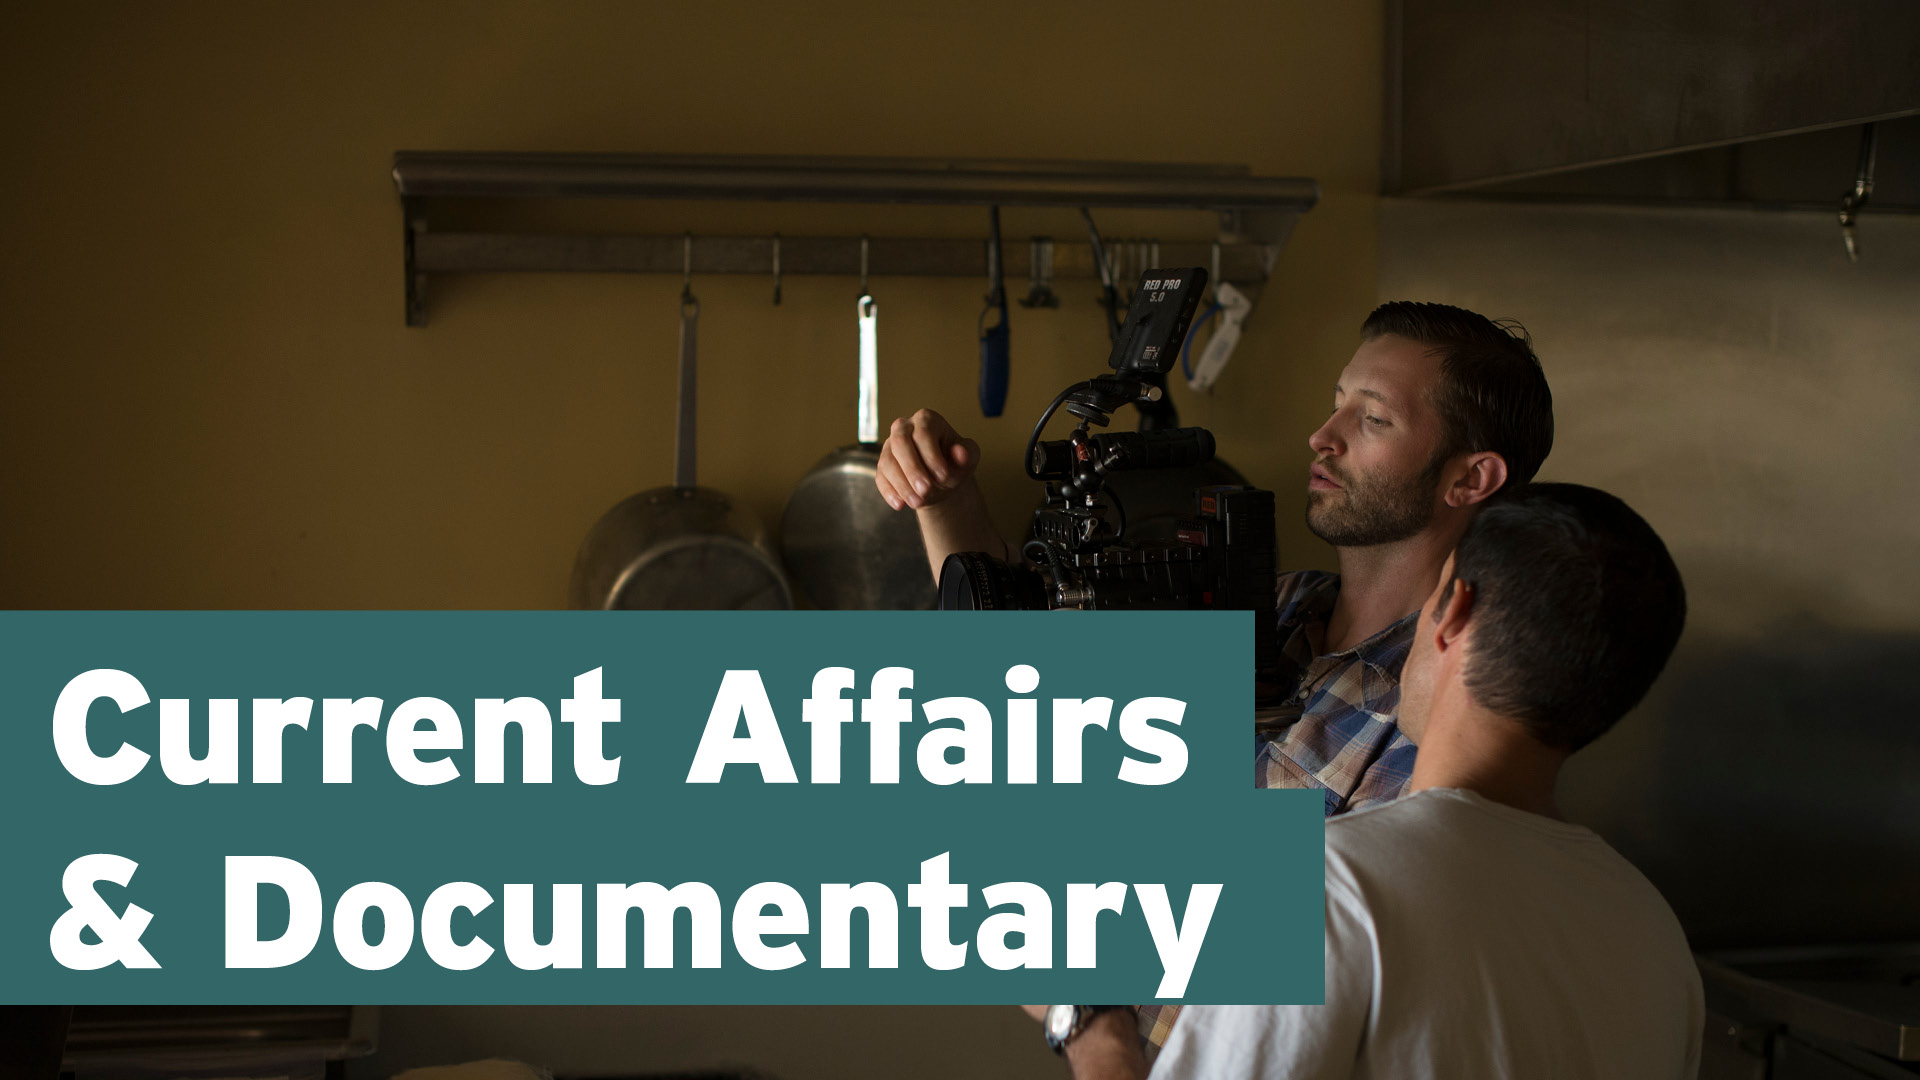 Current Affairs & Documentary